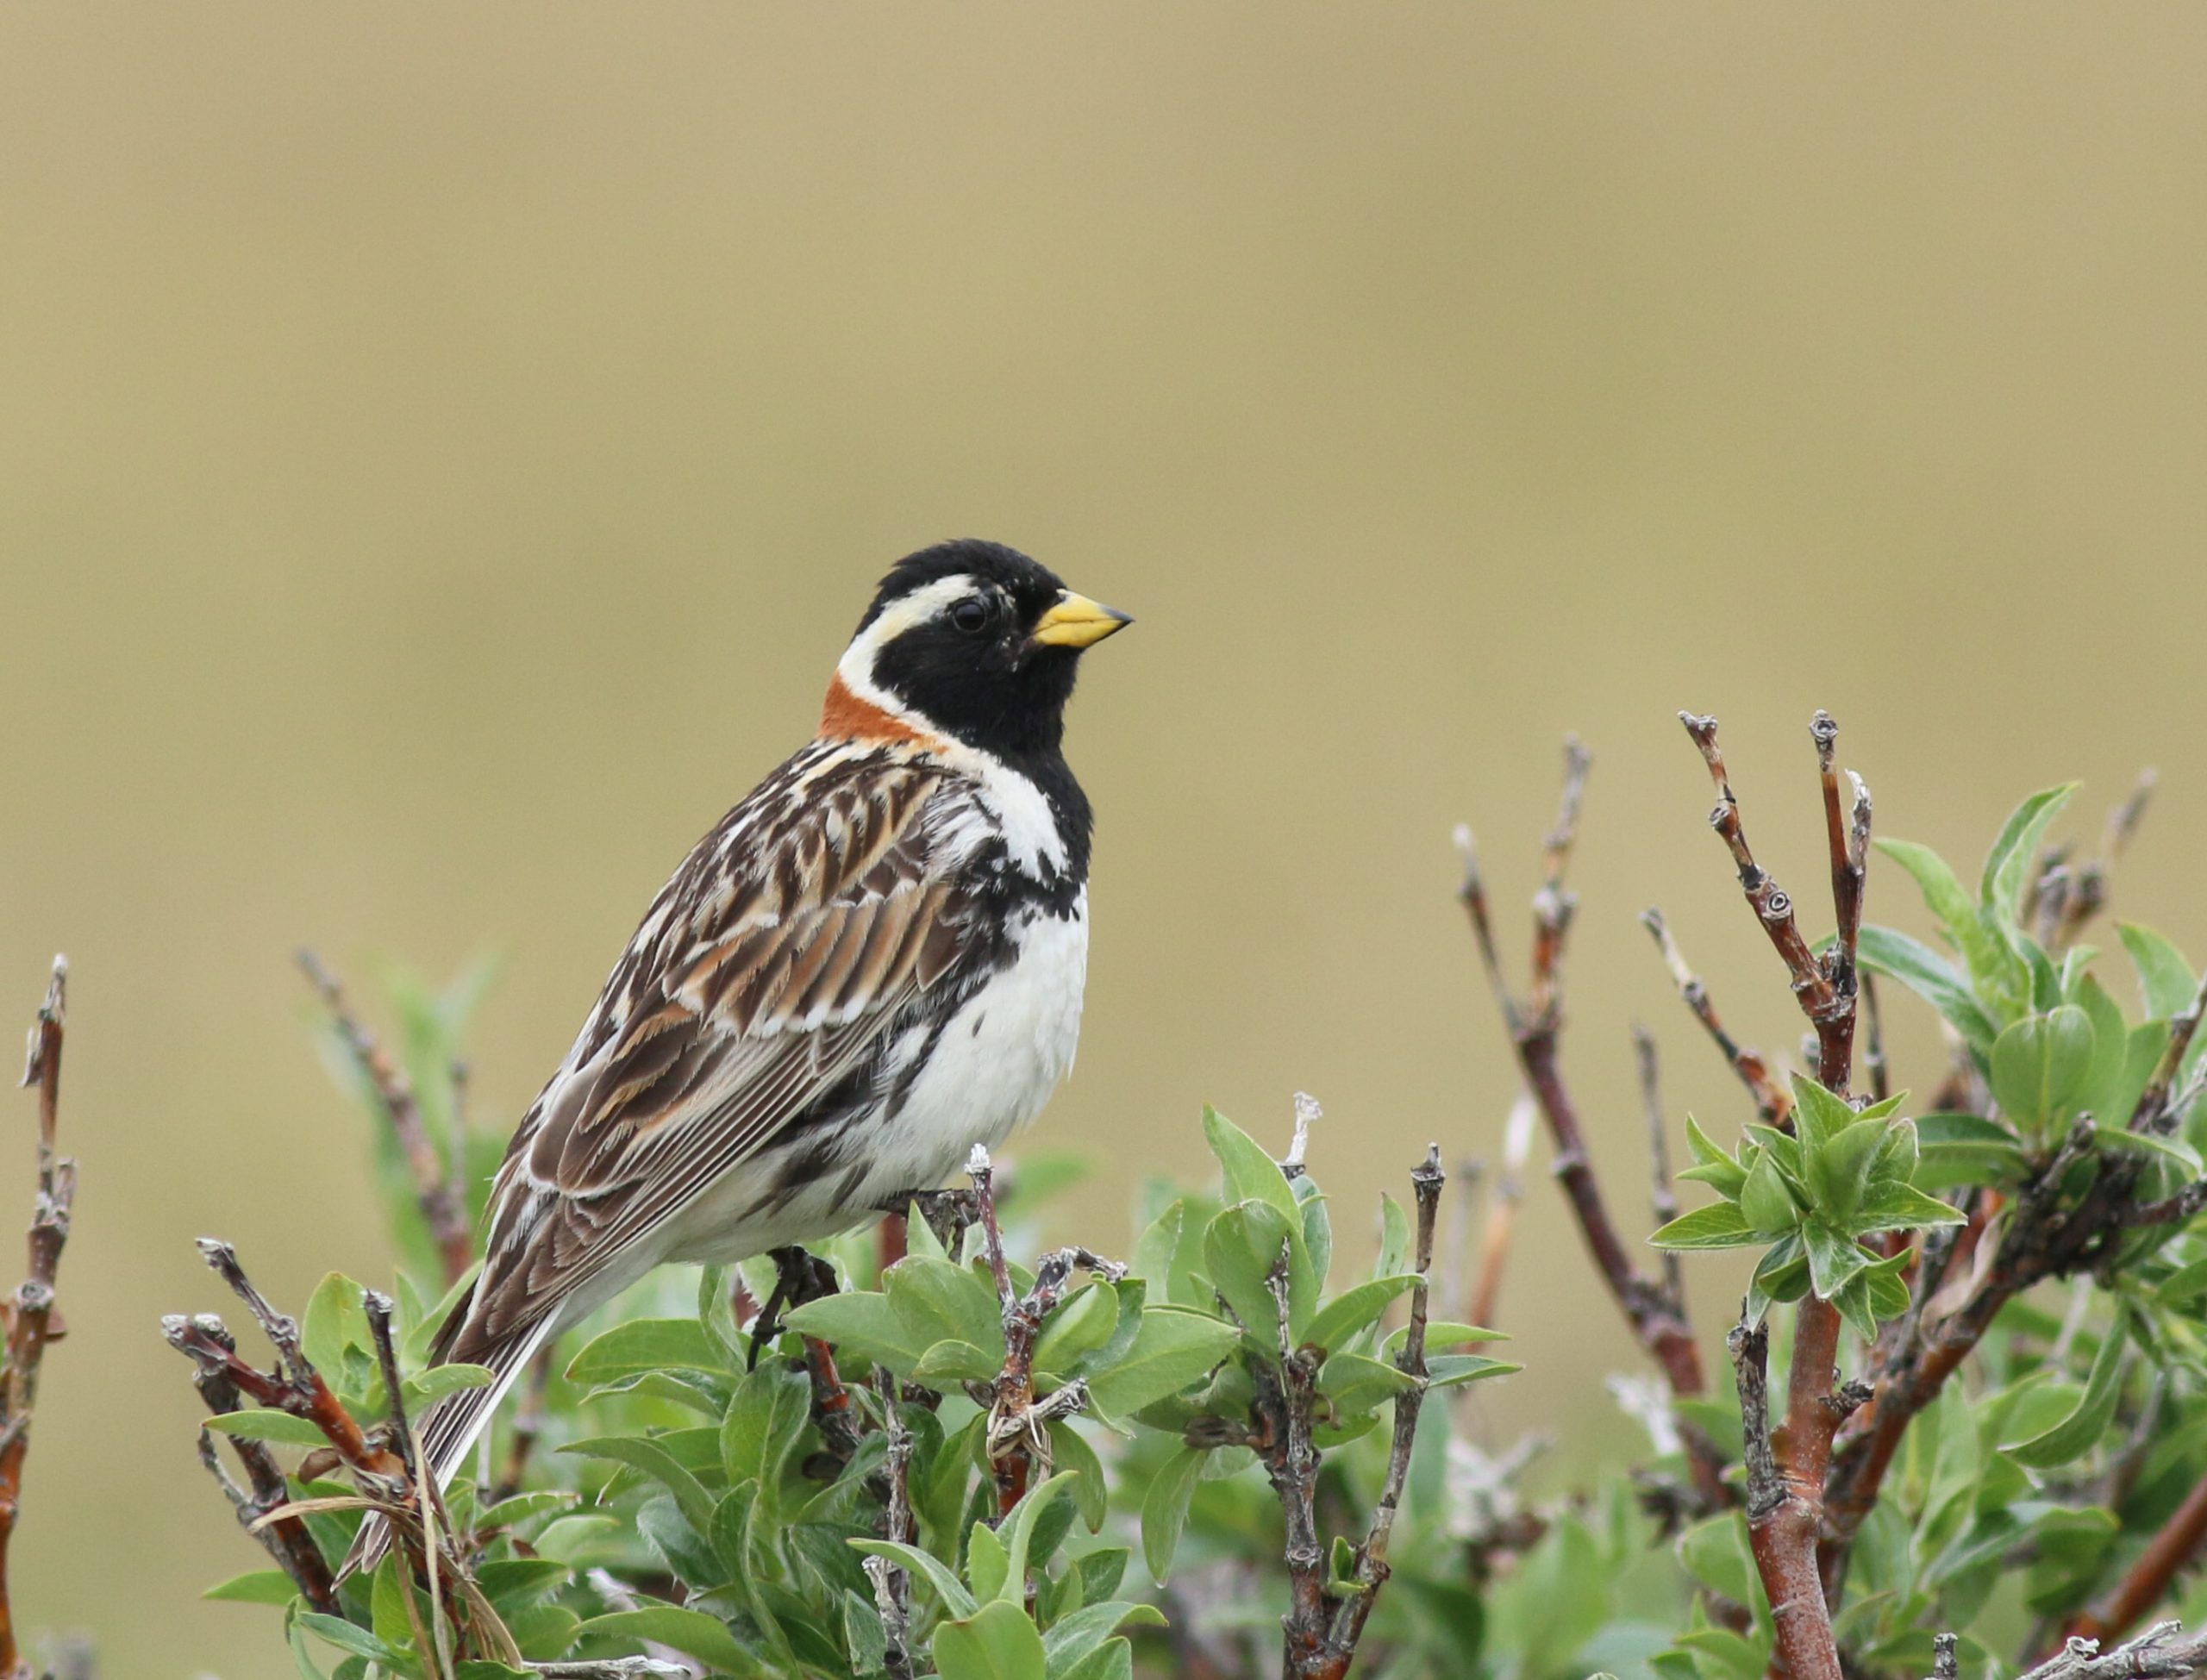 Changes to Migratory Bird Treaty Act would hurt birds: Speaking up from north of the border